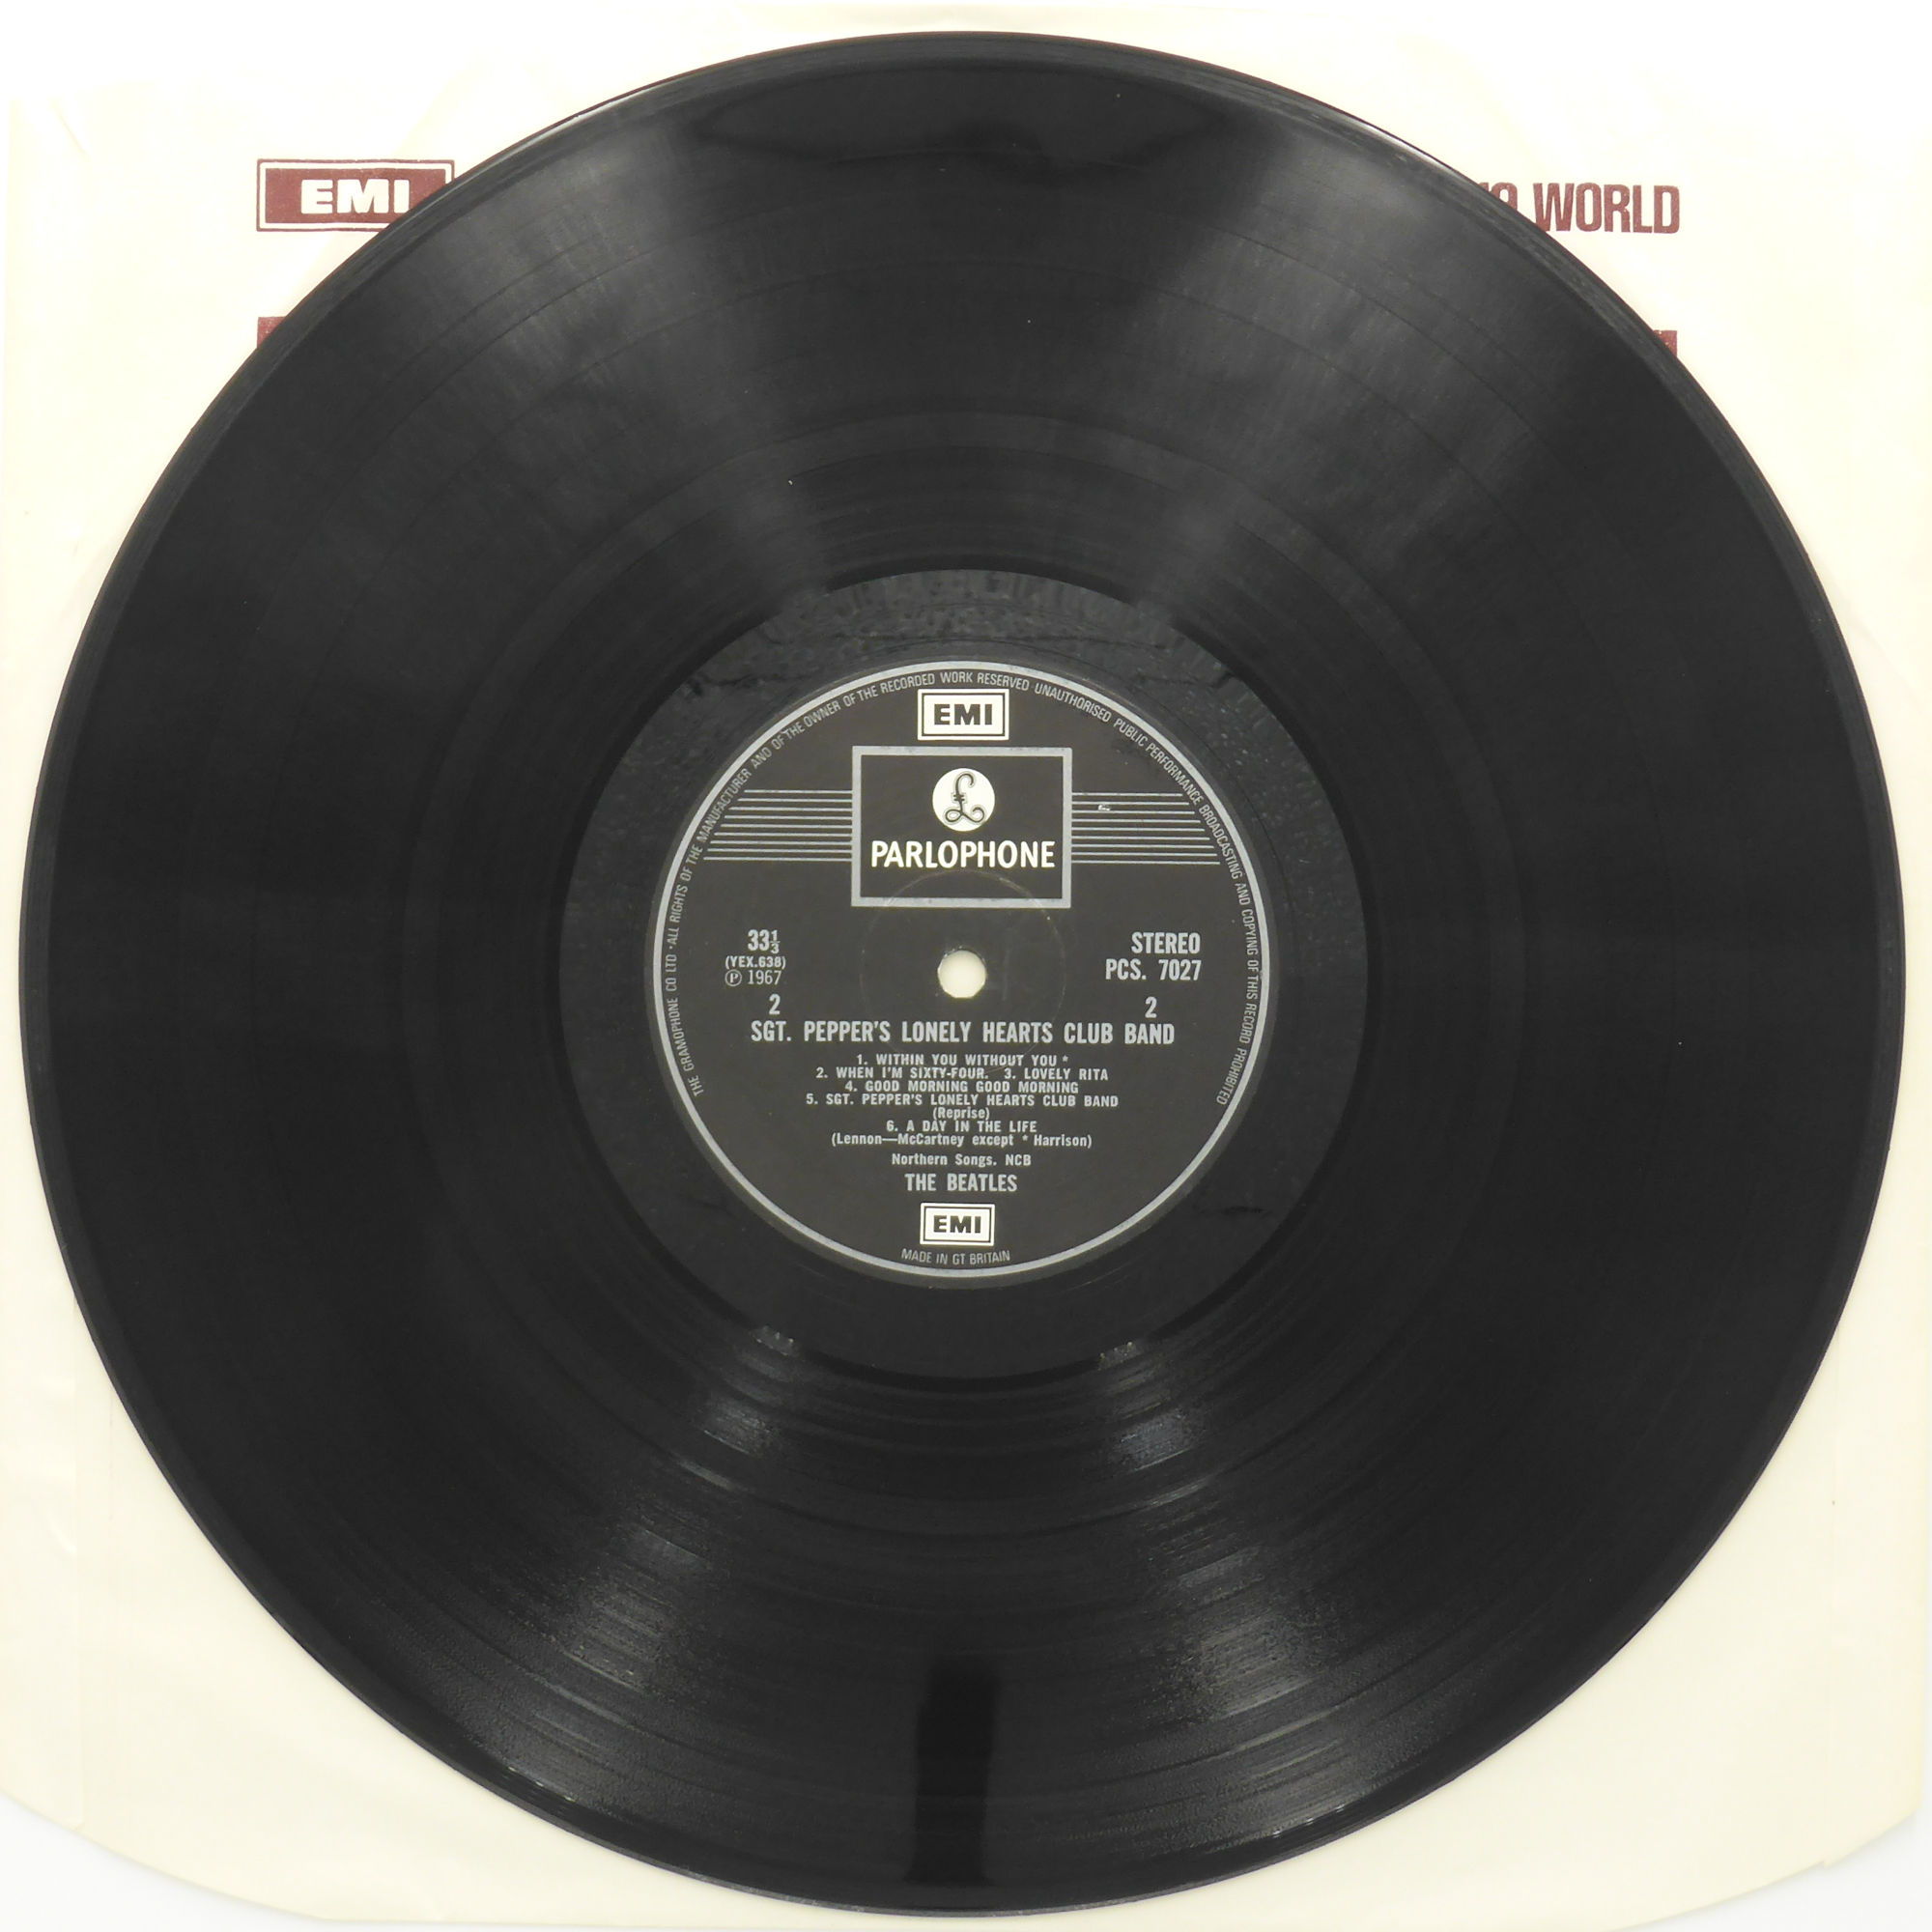 The Beatles Sgt Peppers Insert Pcs 7027 1967